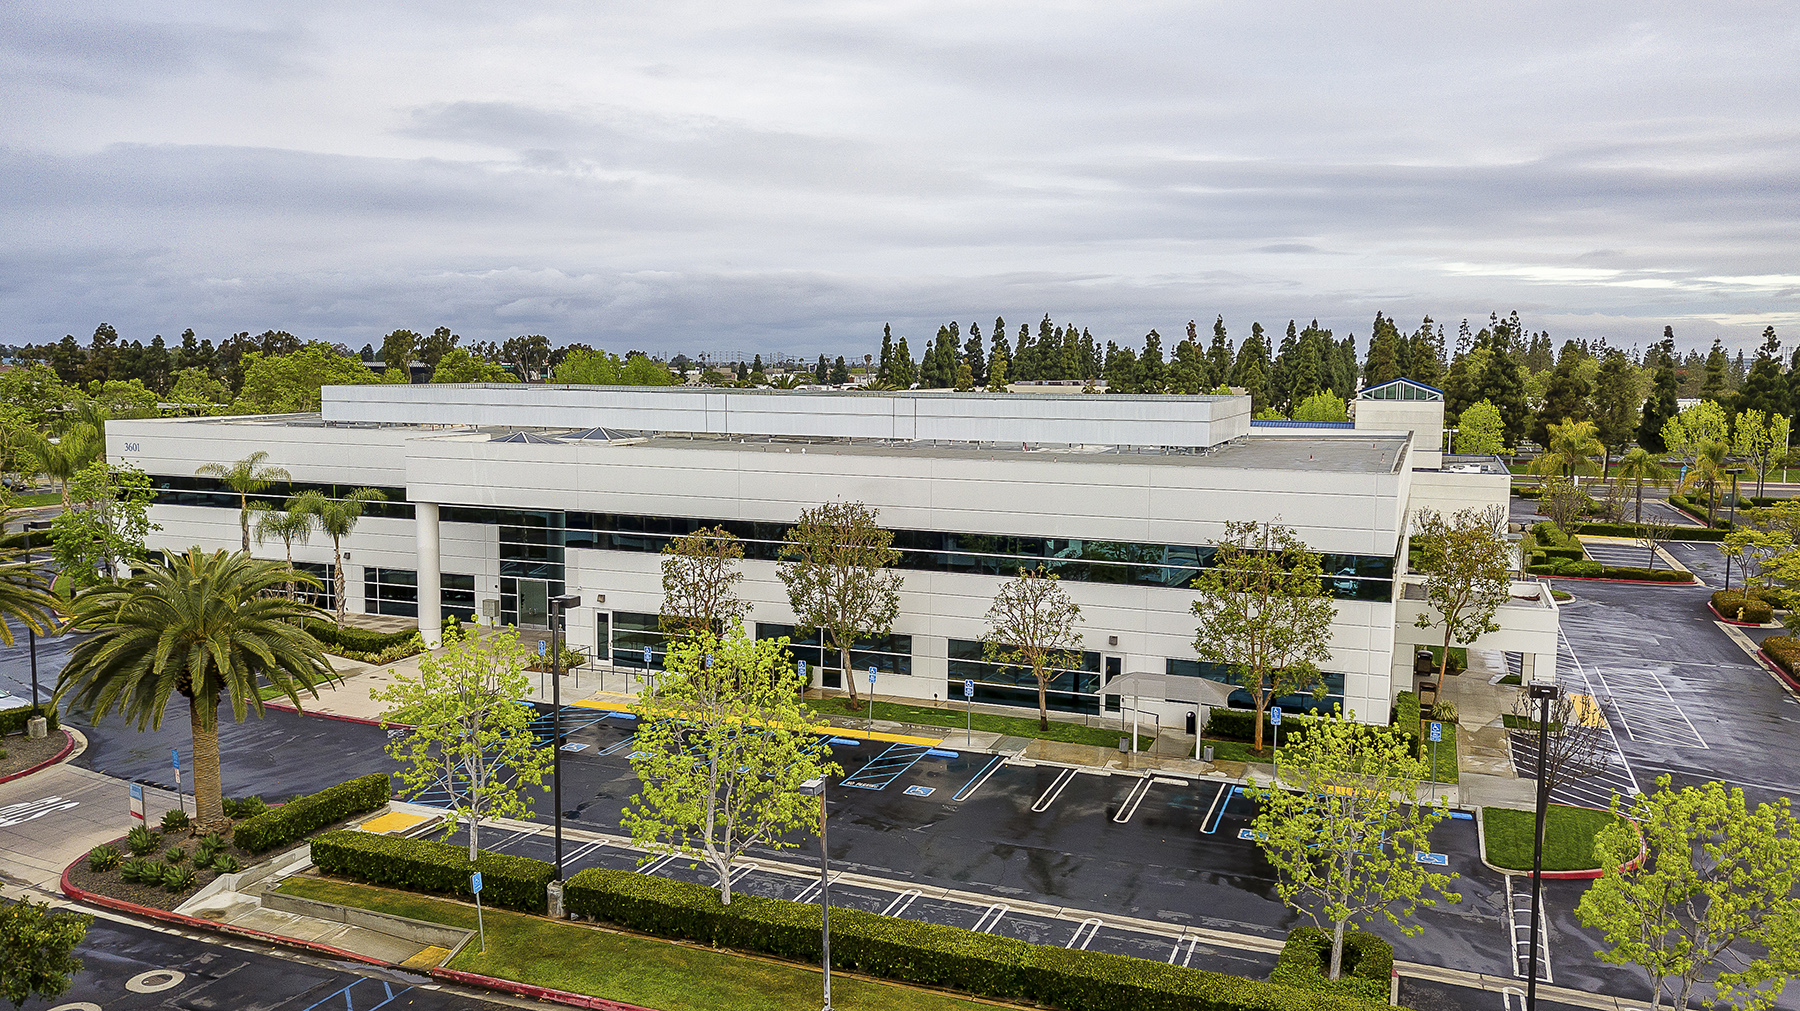 Meridian Sells Newly Renovated 53,500 SF Medical Office Building in Santa Ana for $29.9 Million